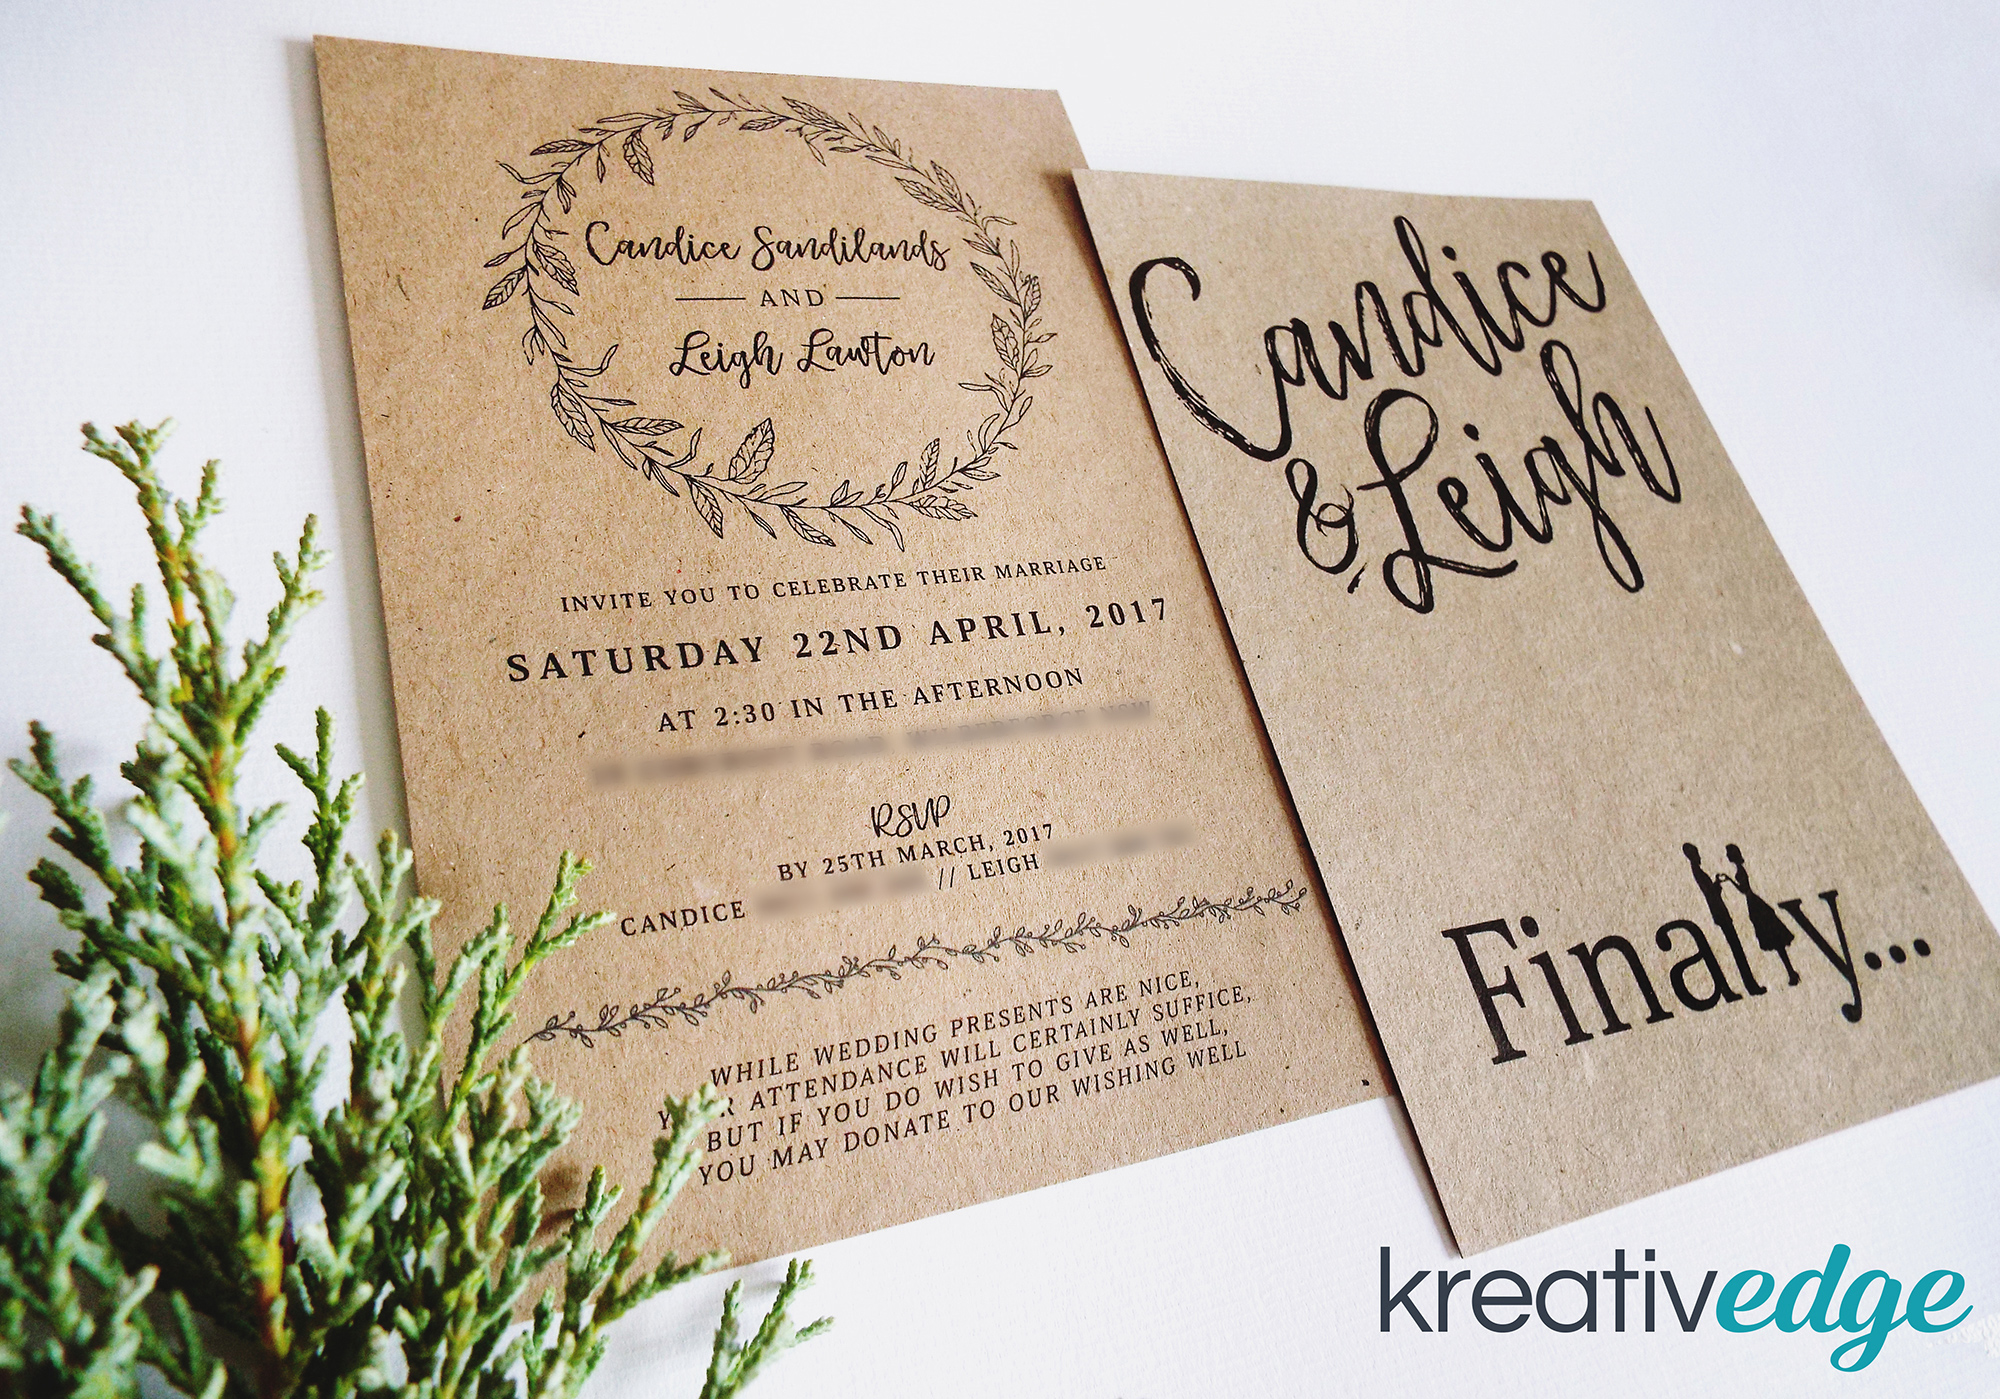 Custom Invitations – kreativedge